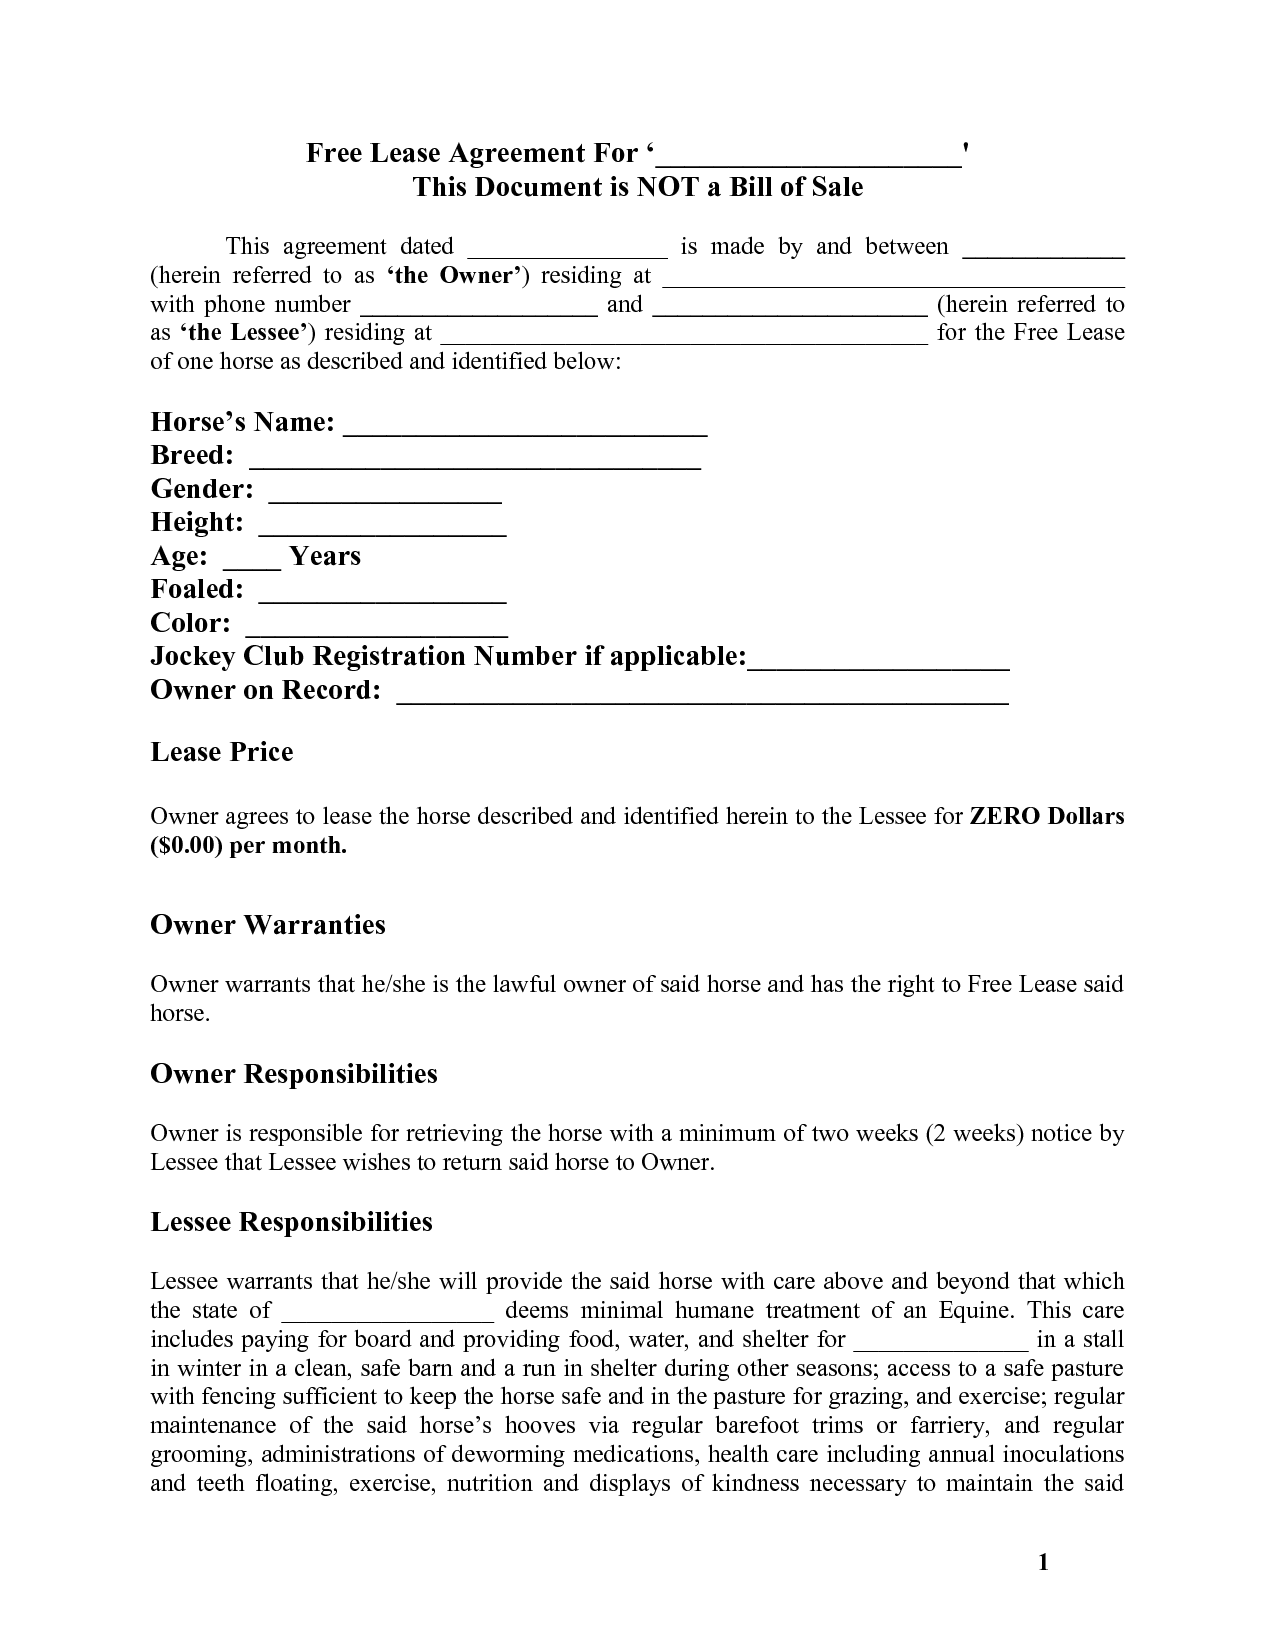 Horse Template Printable | Free Basic Lease Agreement  Blank Lease Agreement Free